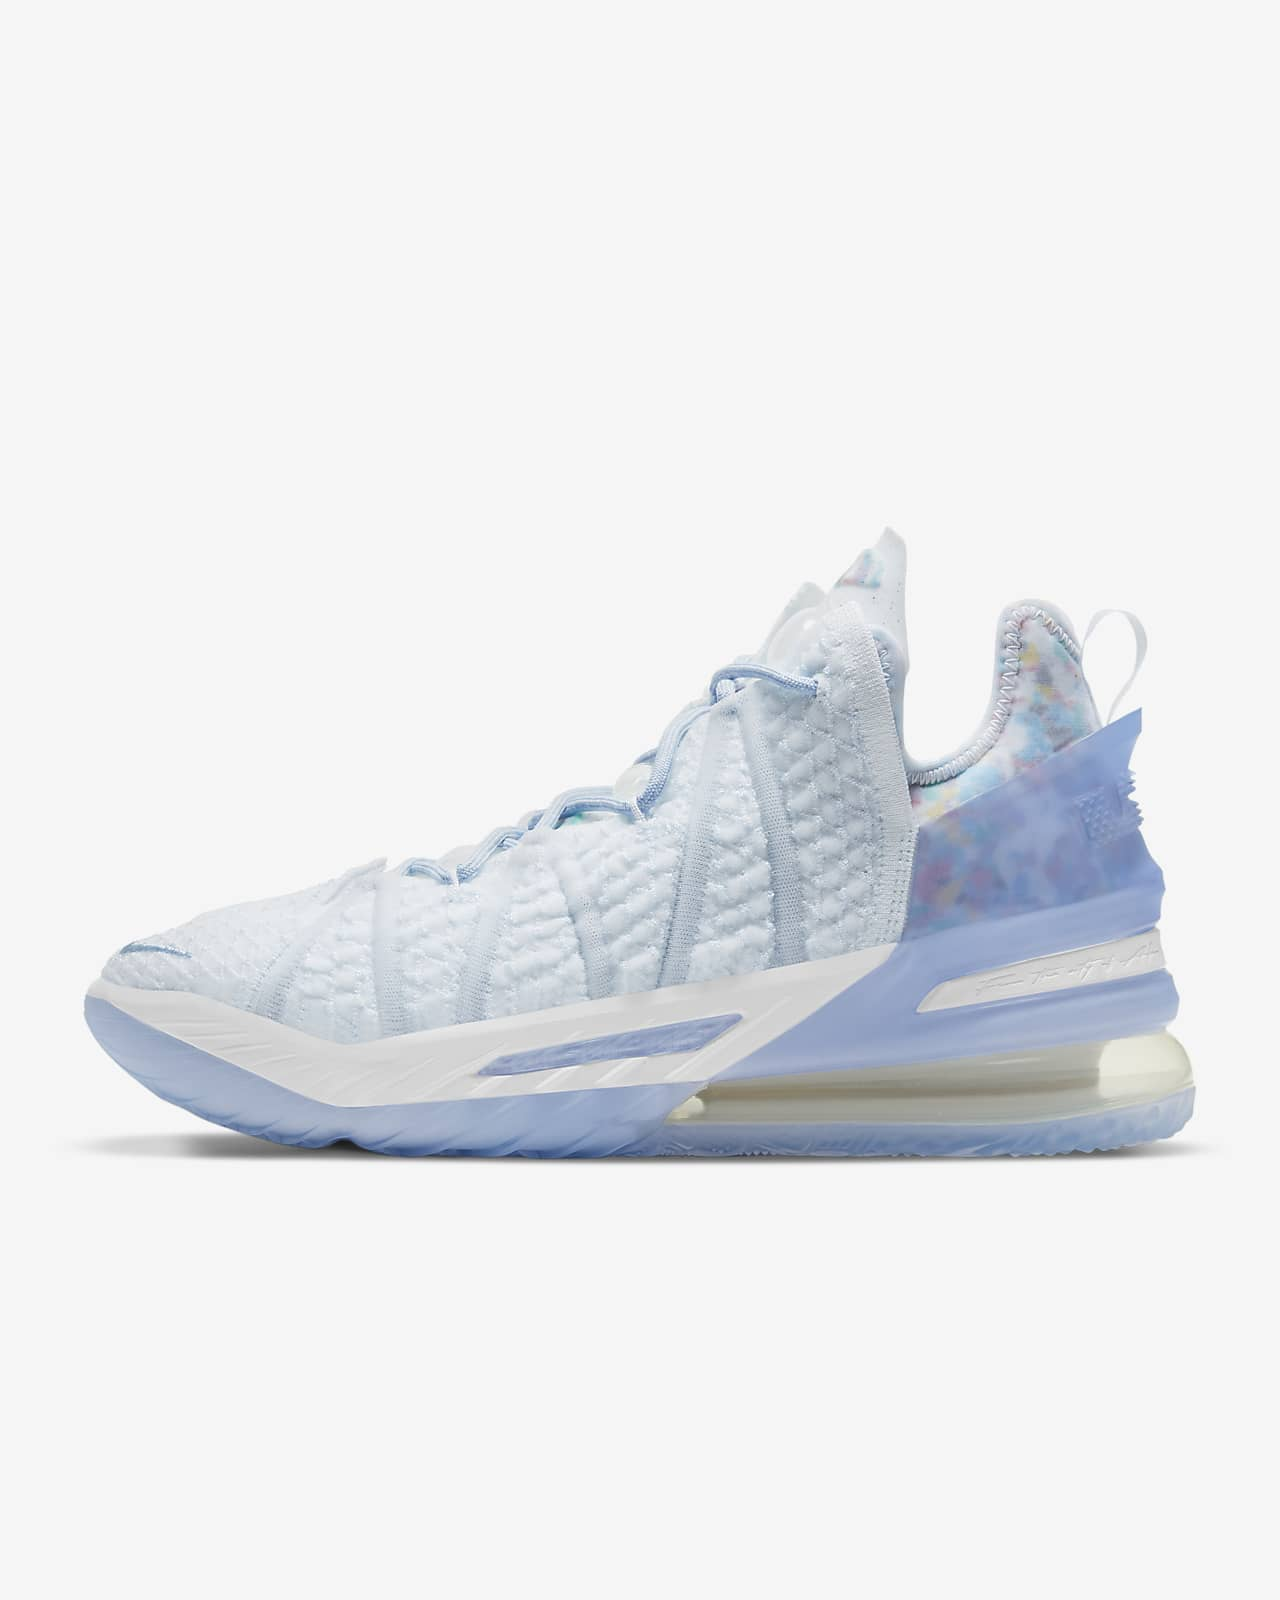 LeBron 18 'Play for the Future' Basketball Shoe